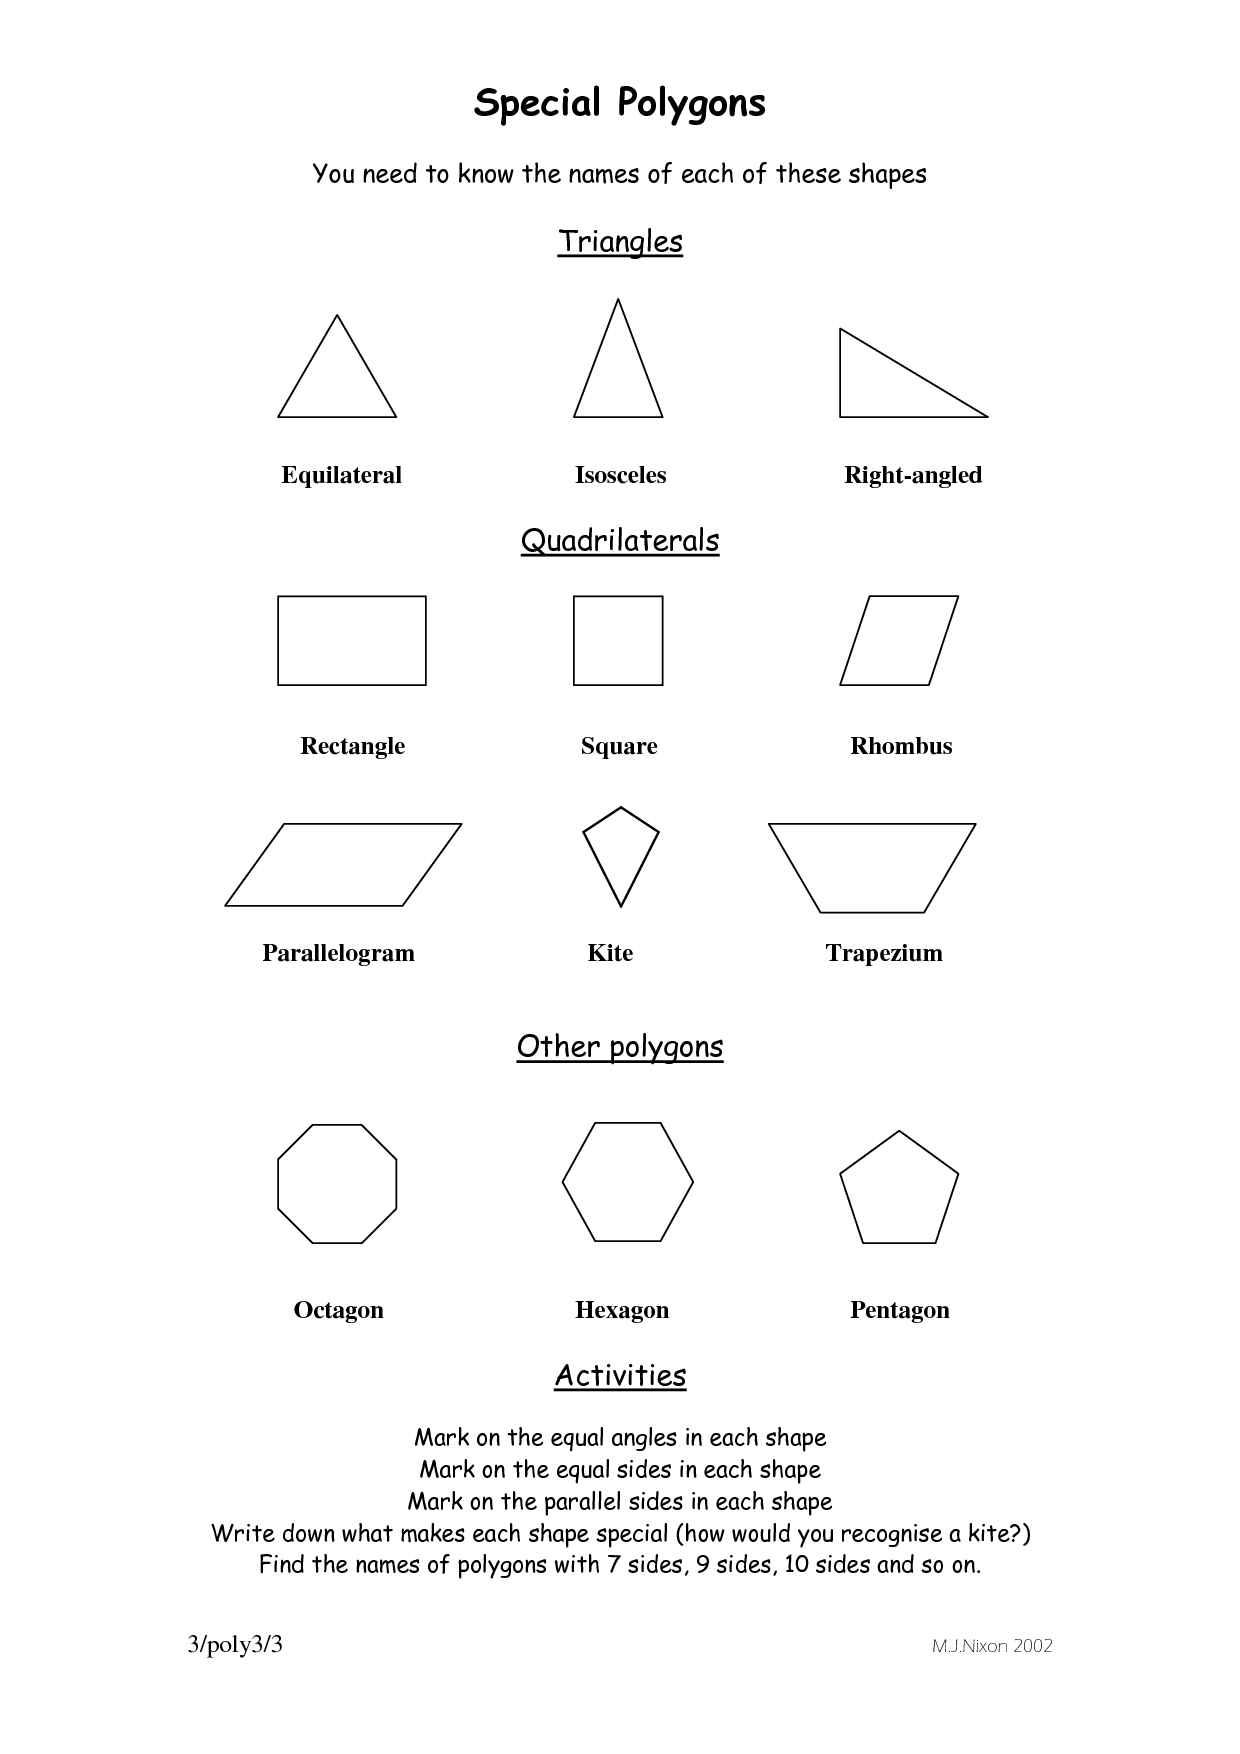 Worksheets Shape Names polygon shapes and names all polygons shape kids math shape